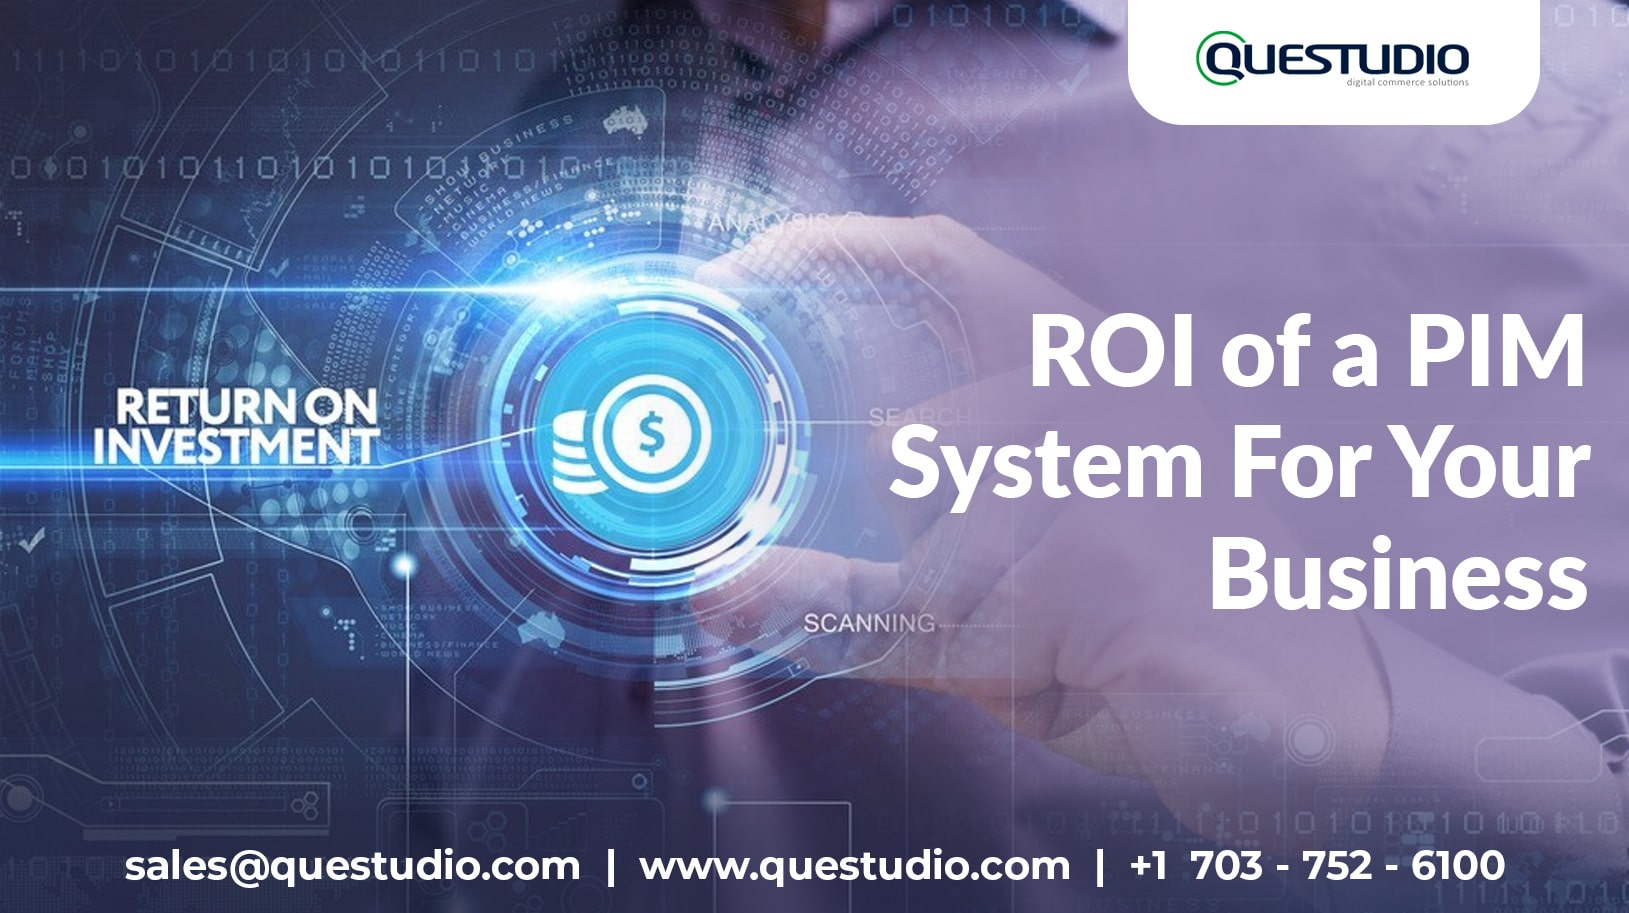 ROI of a PIM System For Your Business